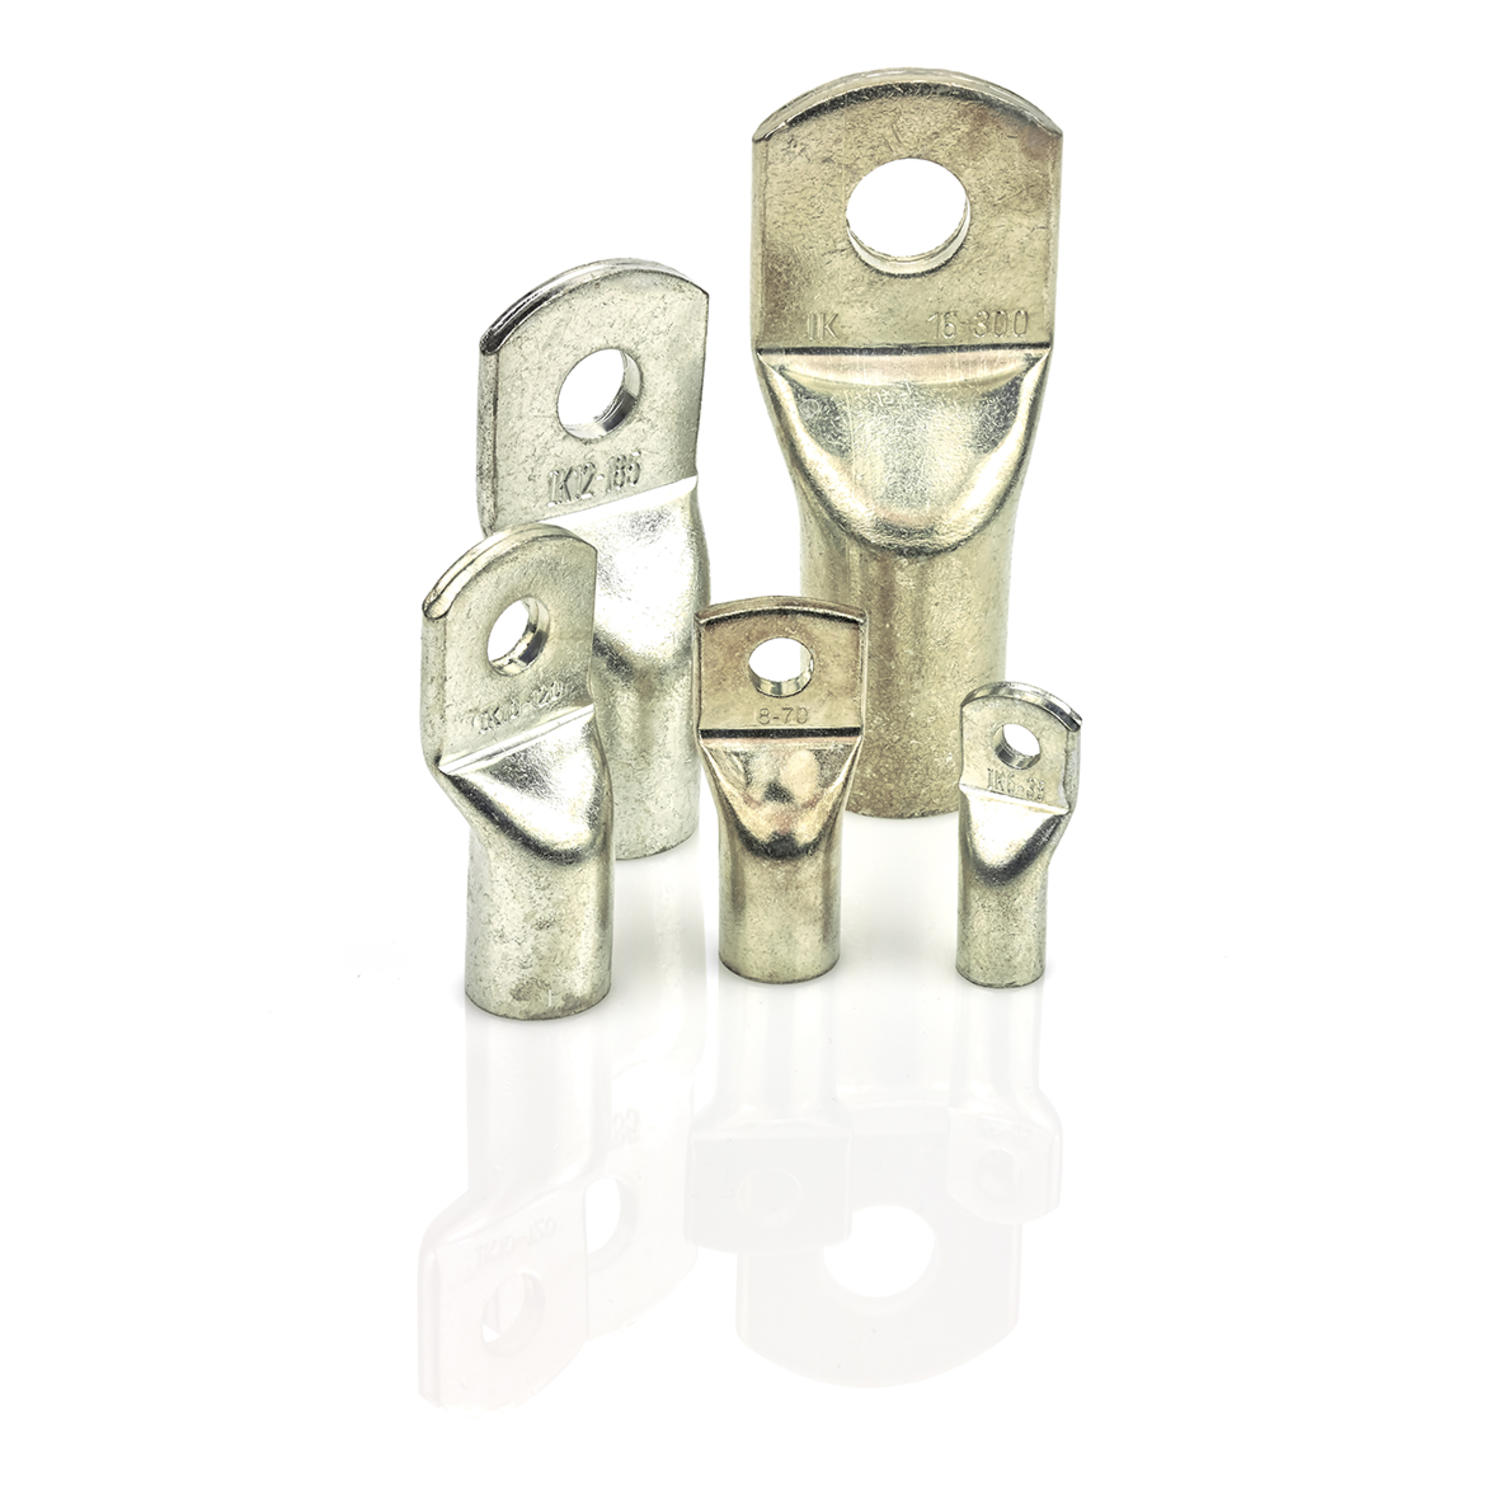 Uninsulated tube cable lugs - RKS